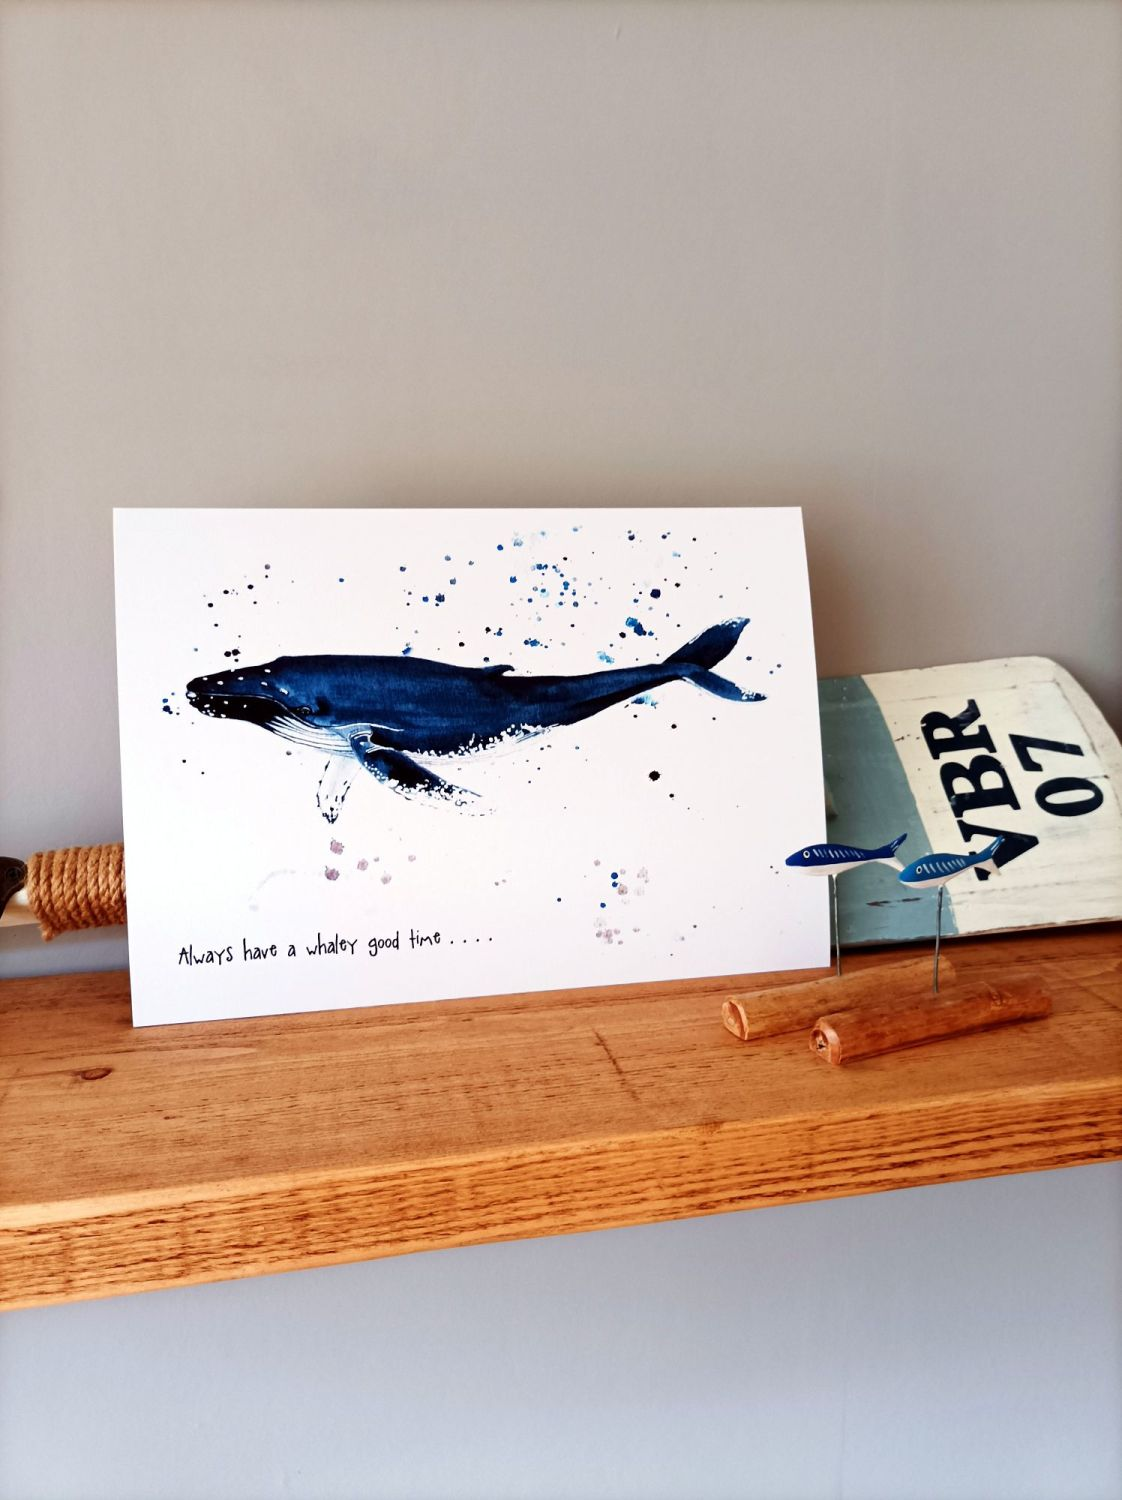 Always have a whaley good time . . . .